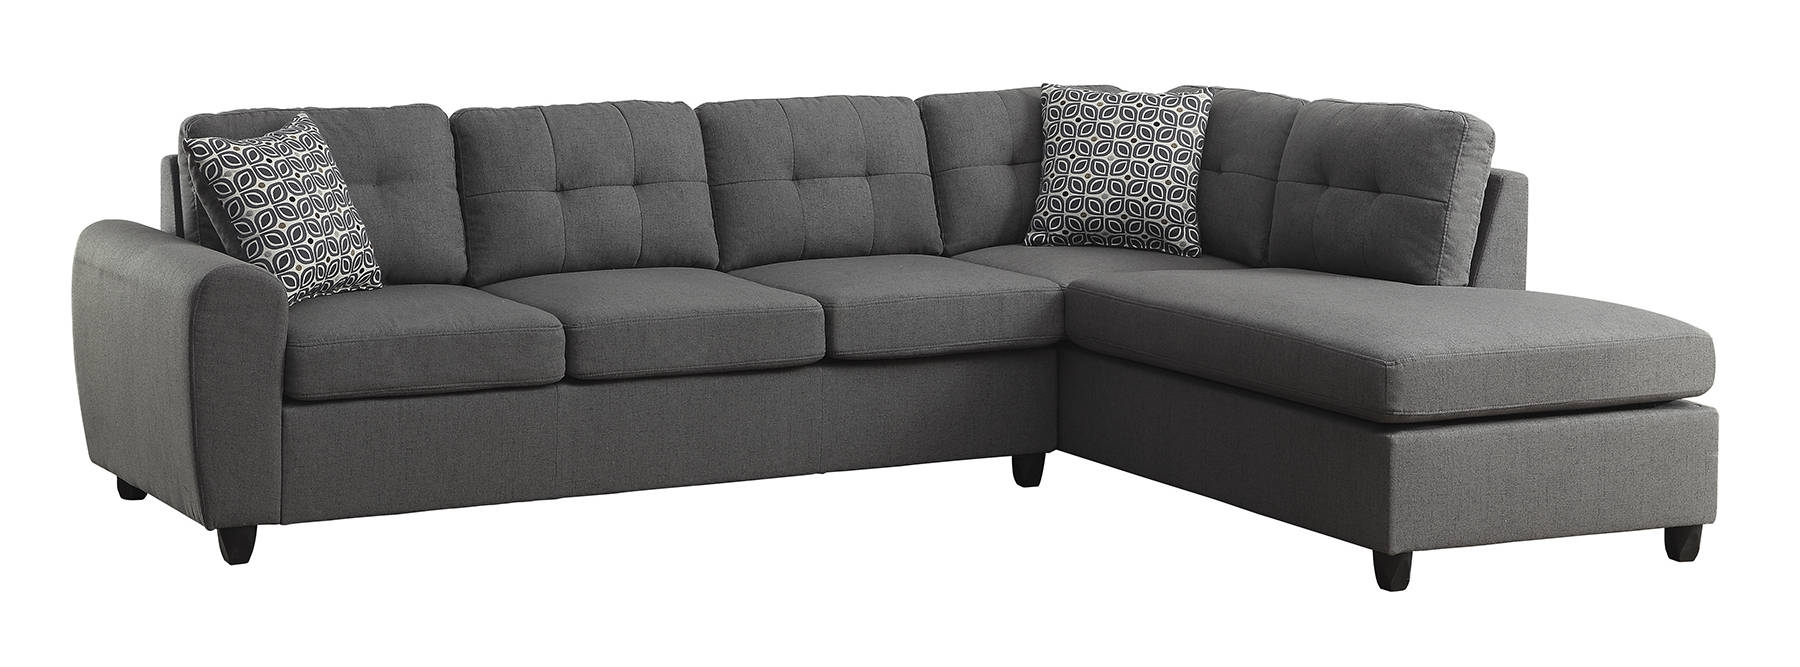 Coaster Furniture Stonenesse Sectional | The Classy Home throughout Evan 2 Piece Sectionals With Raf Chaise (Image 9 of 30)